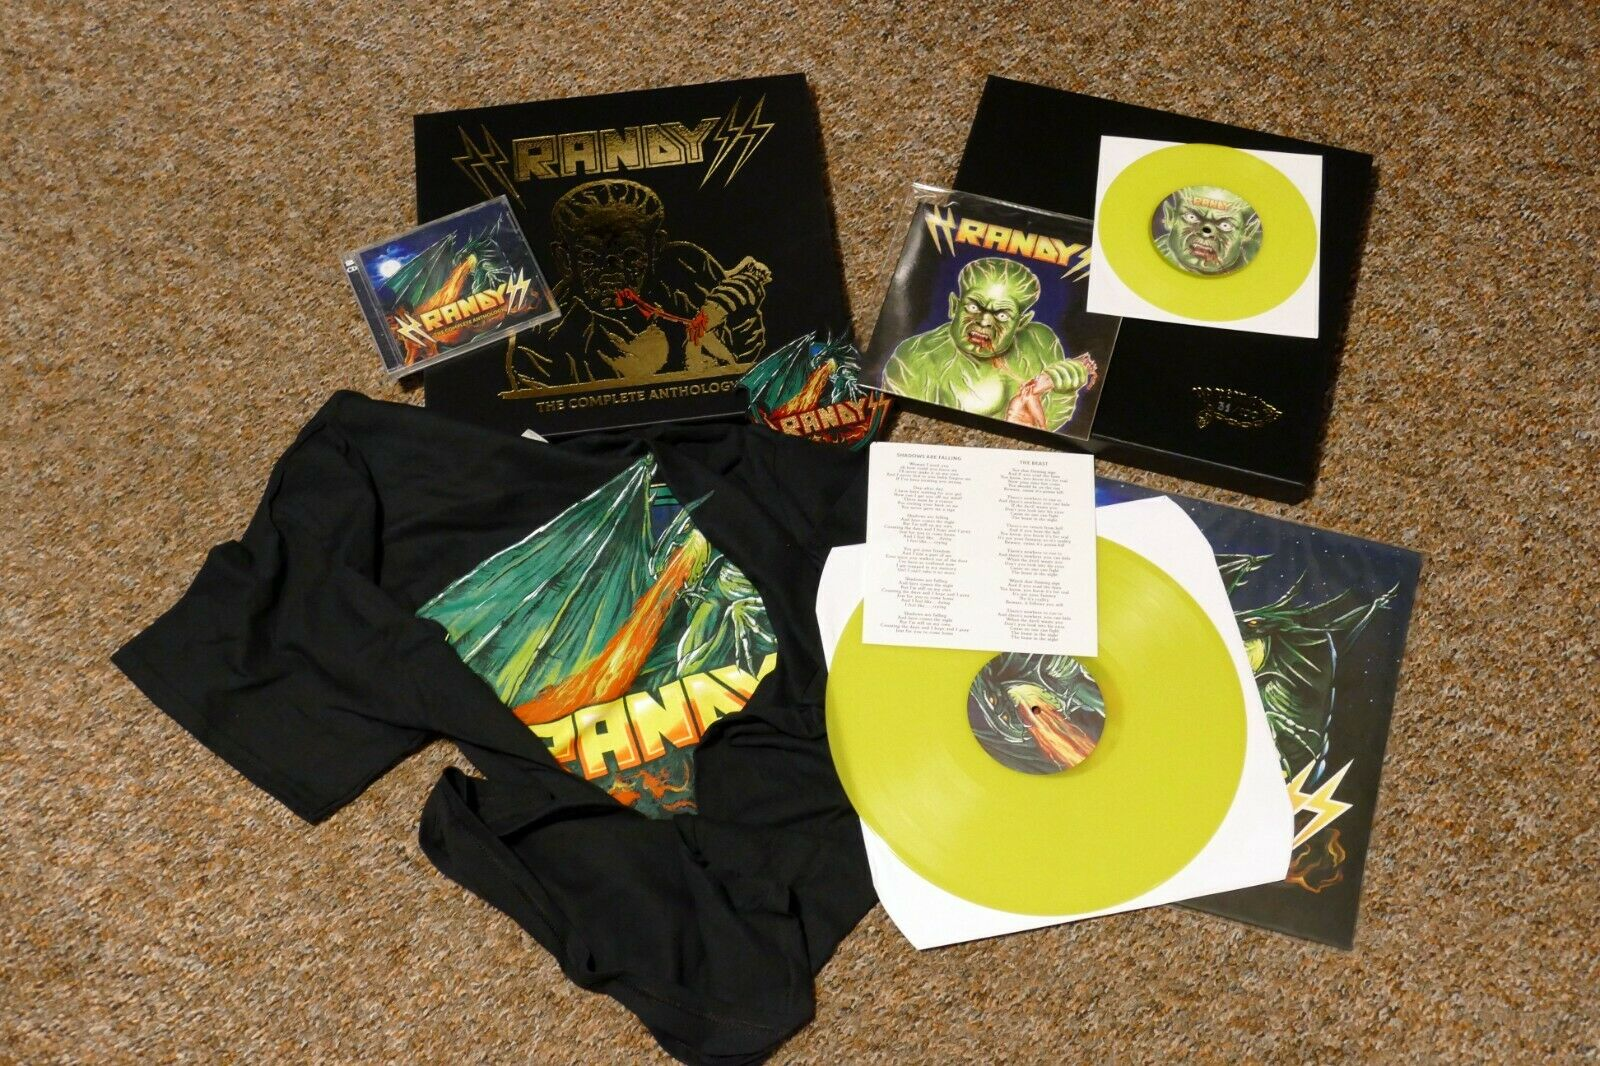 RANDY the complete anthology BOX Set lim 100 shadows are falling the beast Vinyl